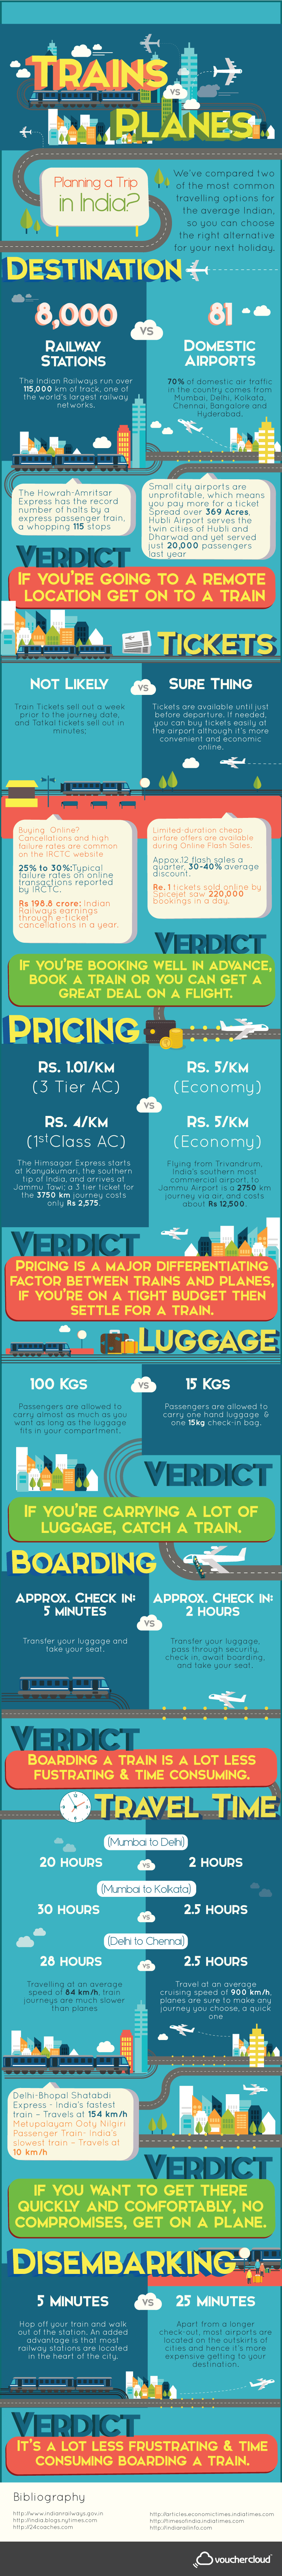 Trains vs planes travelling india